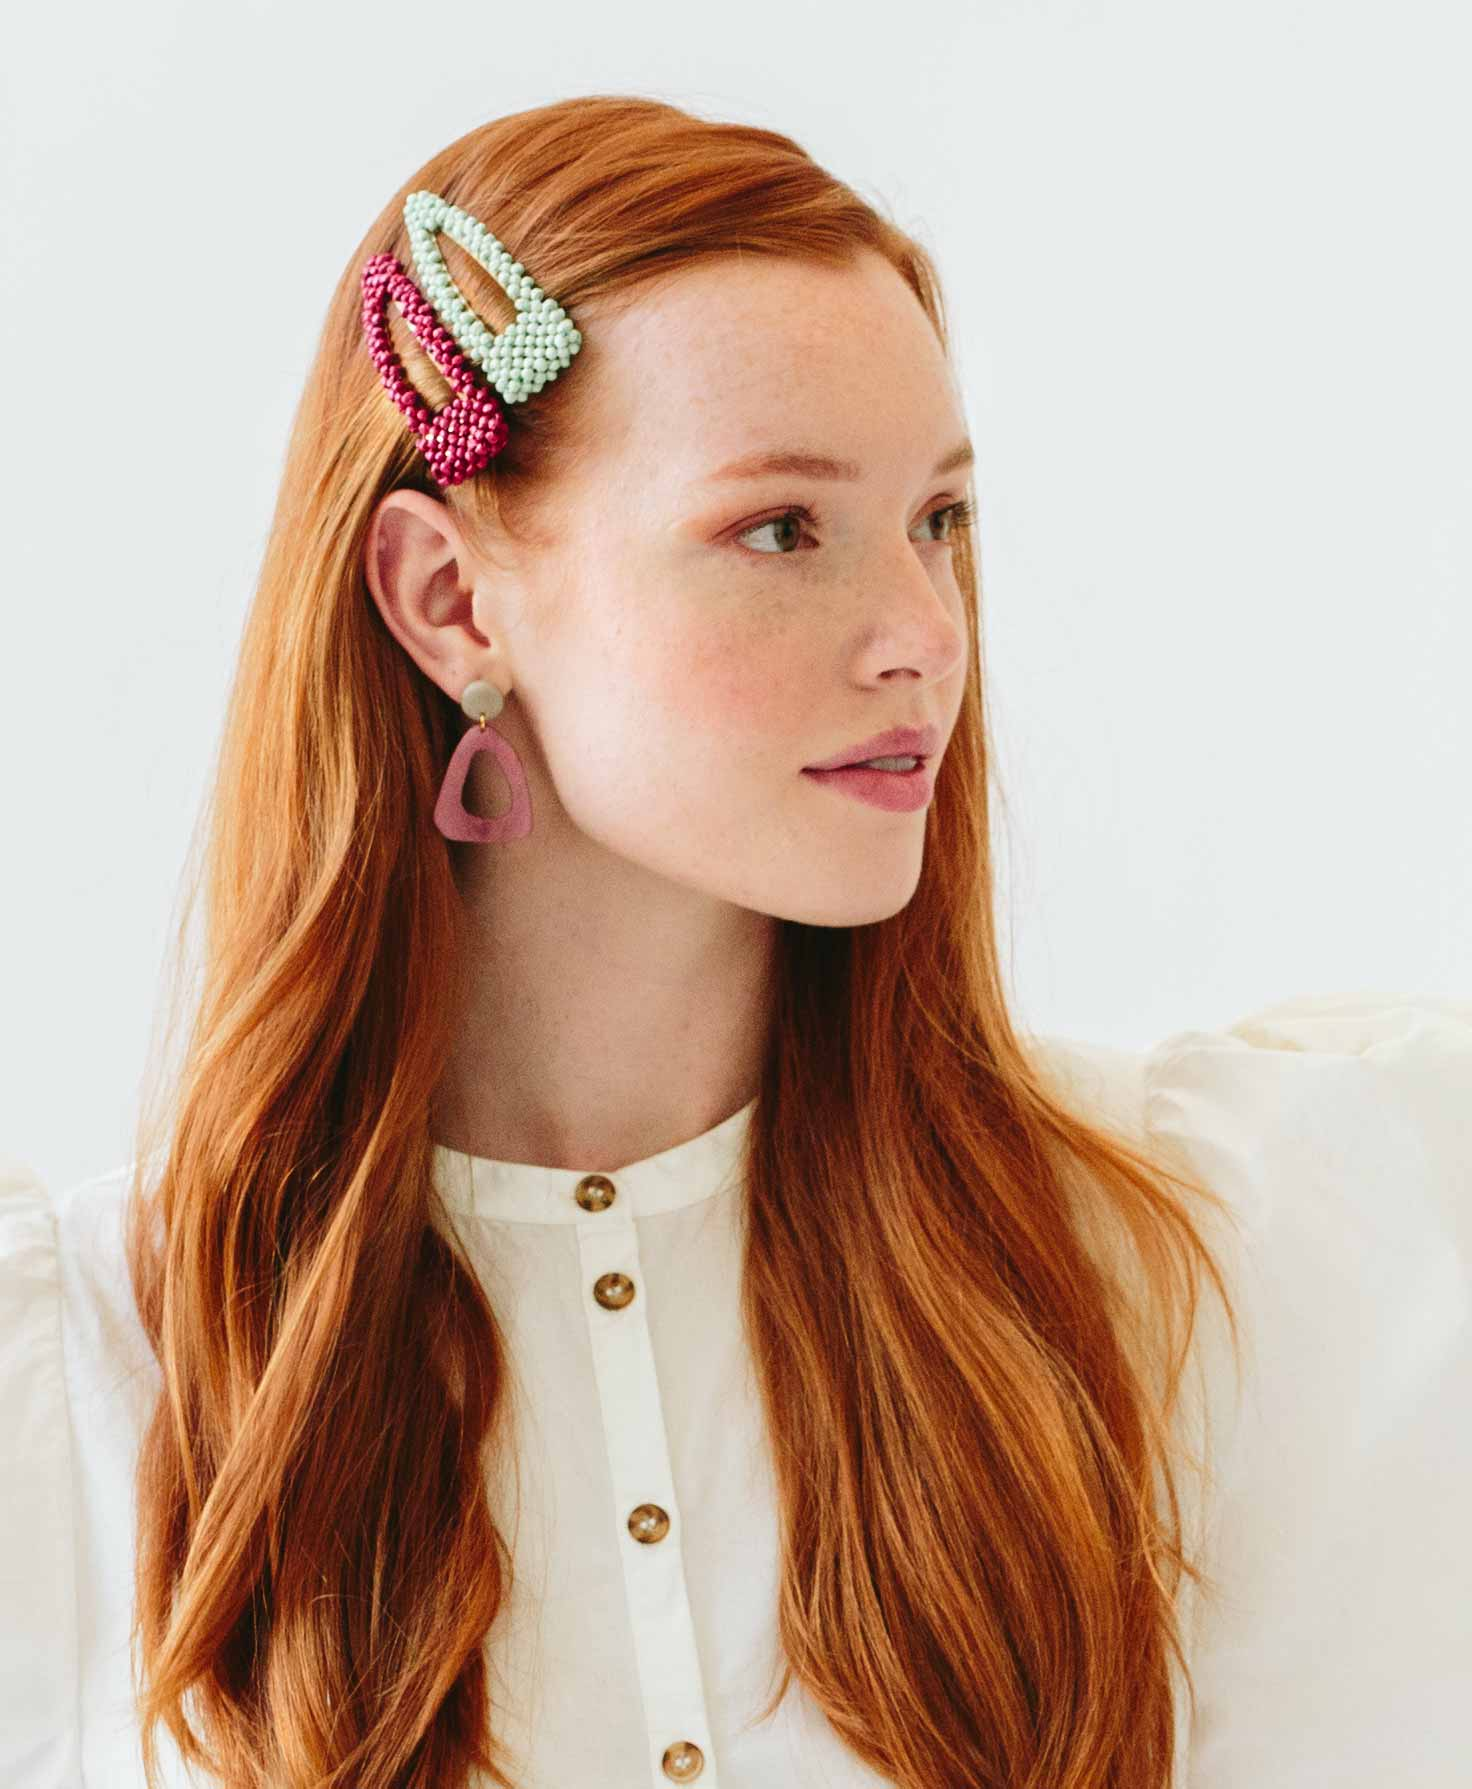 A model wears the Adorned Hair Clips on the side of her head. She wears both clips stacked vertically on top of one another for a colorful statement.